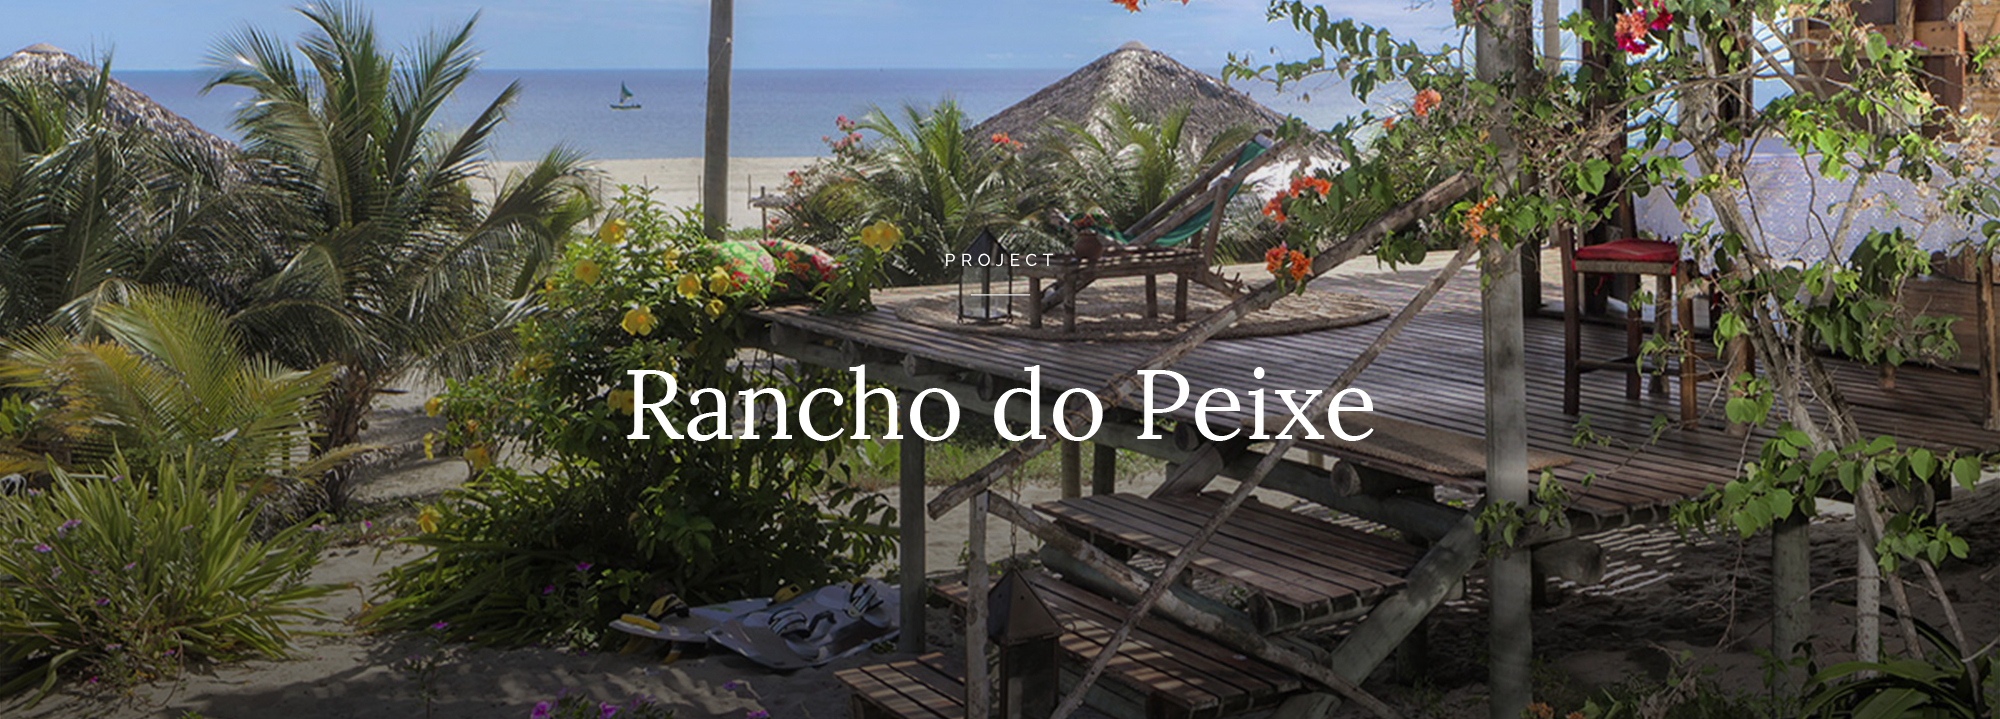 Rancho do Peixe